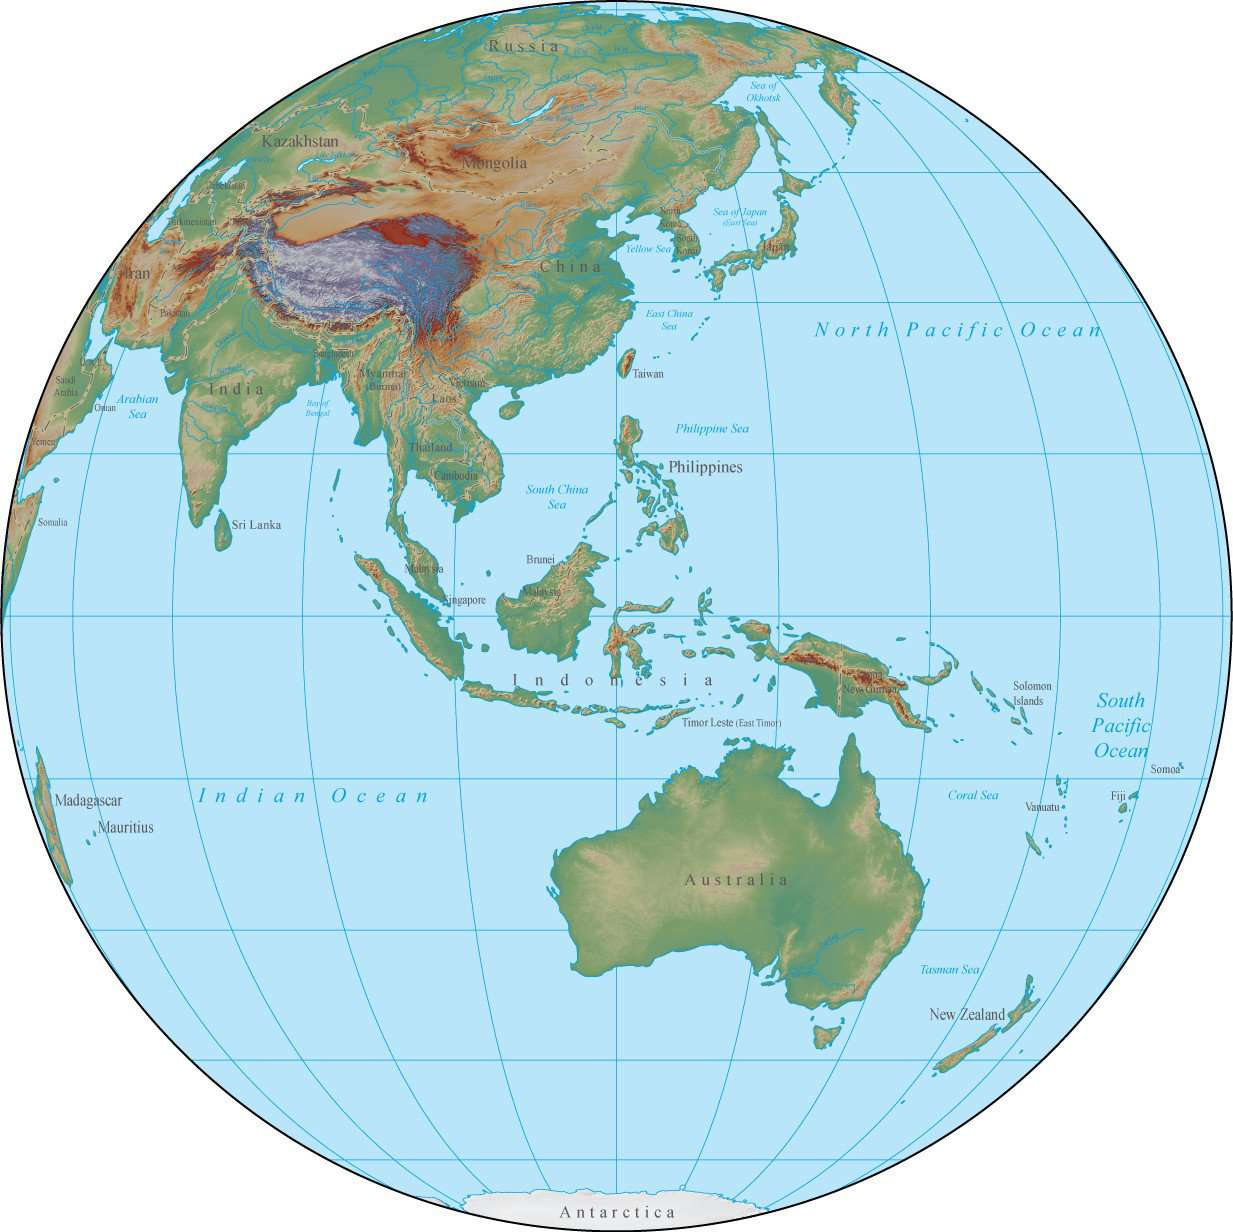 Australia Map Globe.Globe Over Australia Map Plus Terrain With Countries And Water Features